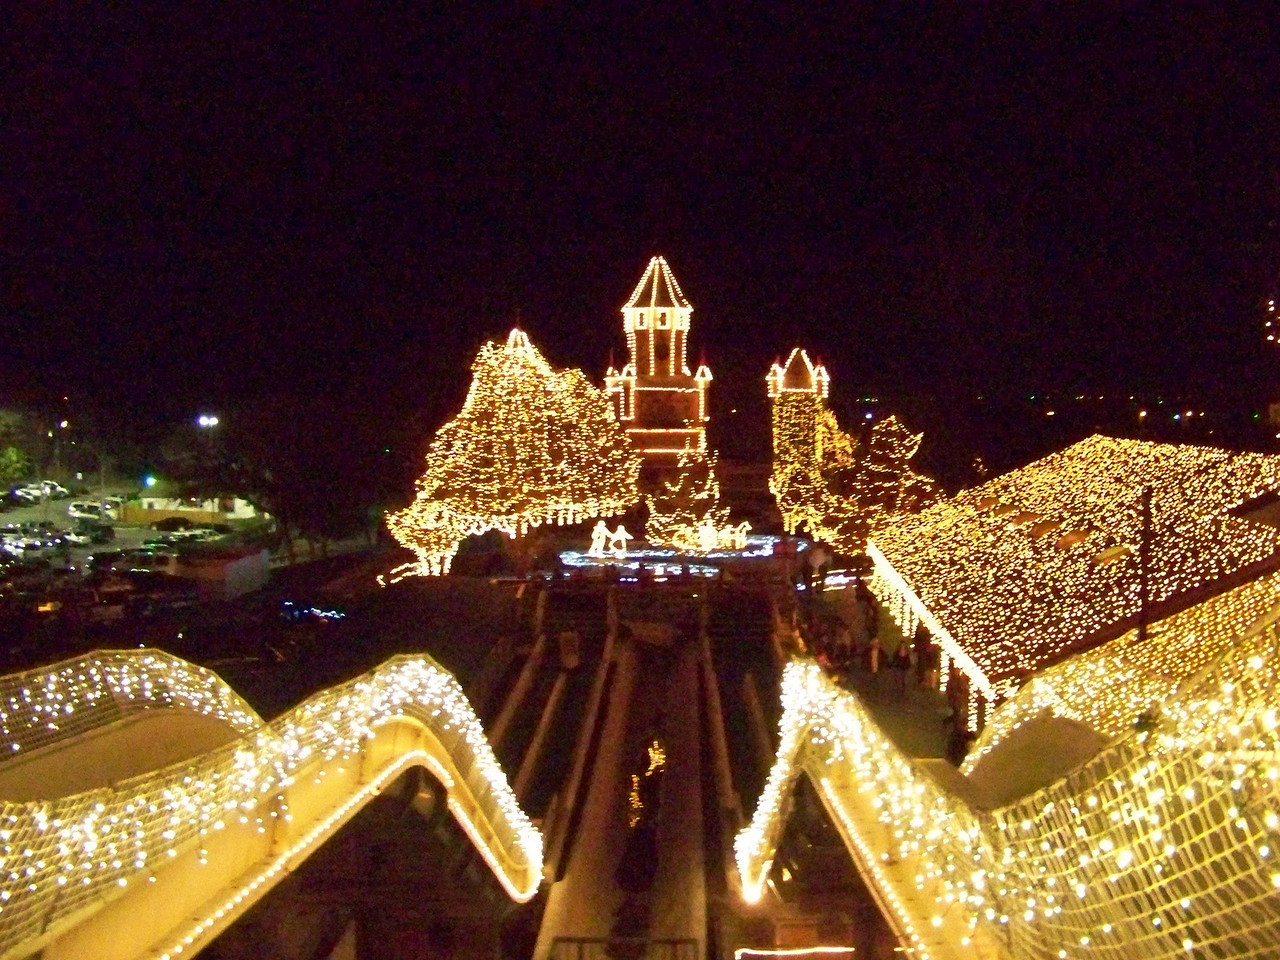 The view from the top of the big (now dry) water slide, right before I slid down.<br /> [Schlitterbahn's Hill Country Christmas 2009]